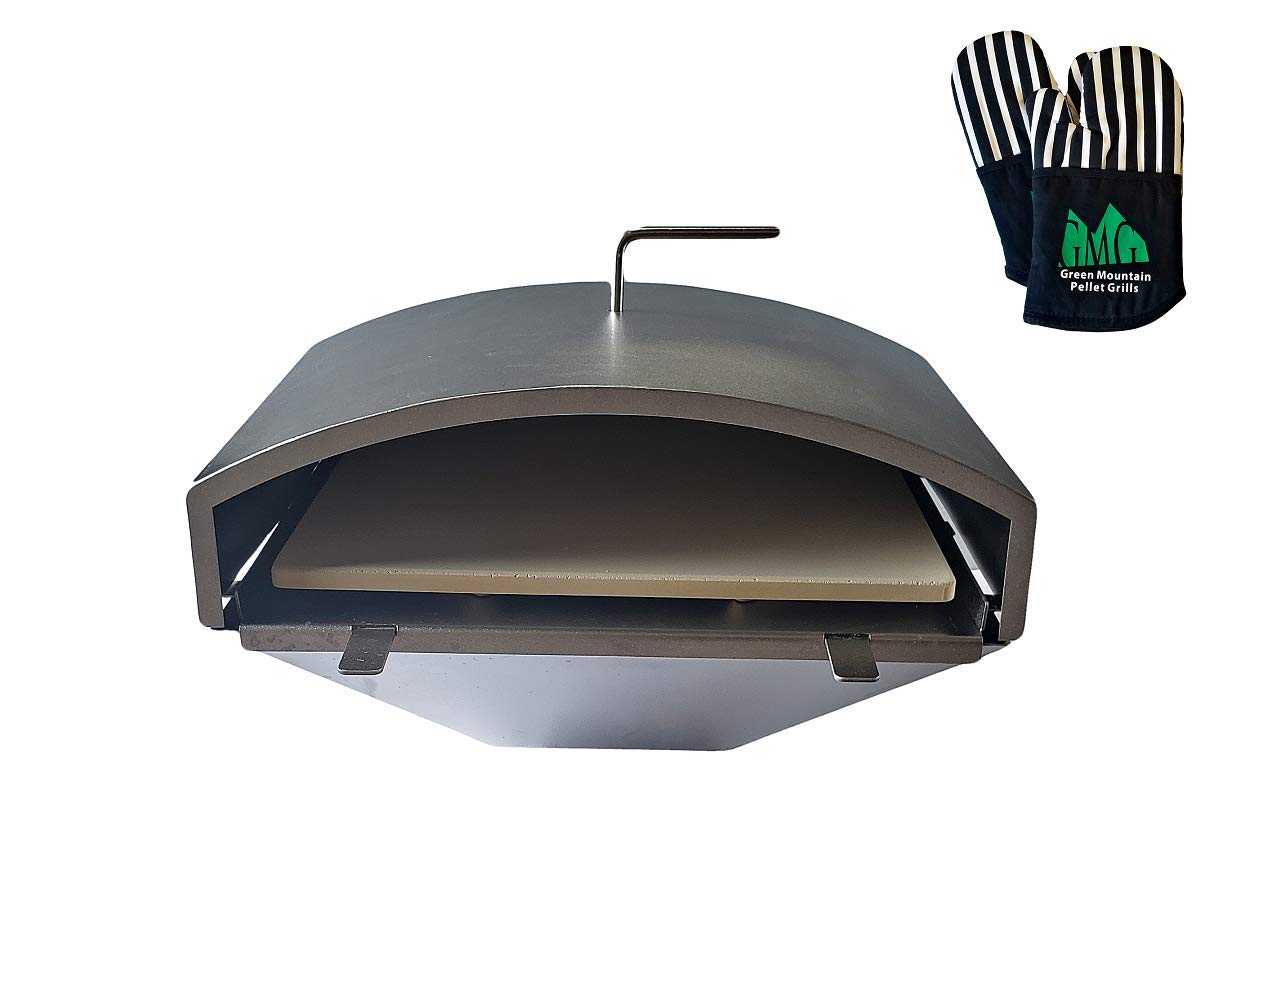 GMG Green Mountain Grill Wood Fired Pizza Oven + Free Oven Mitts by GMG